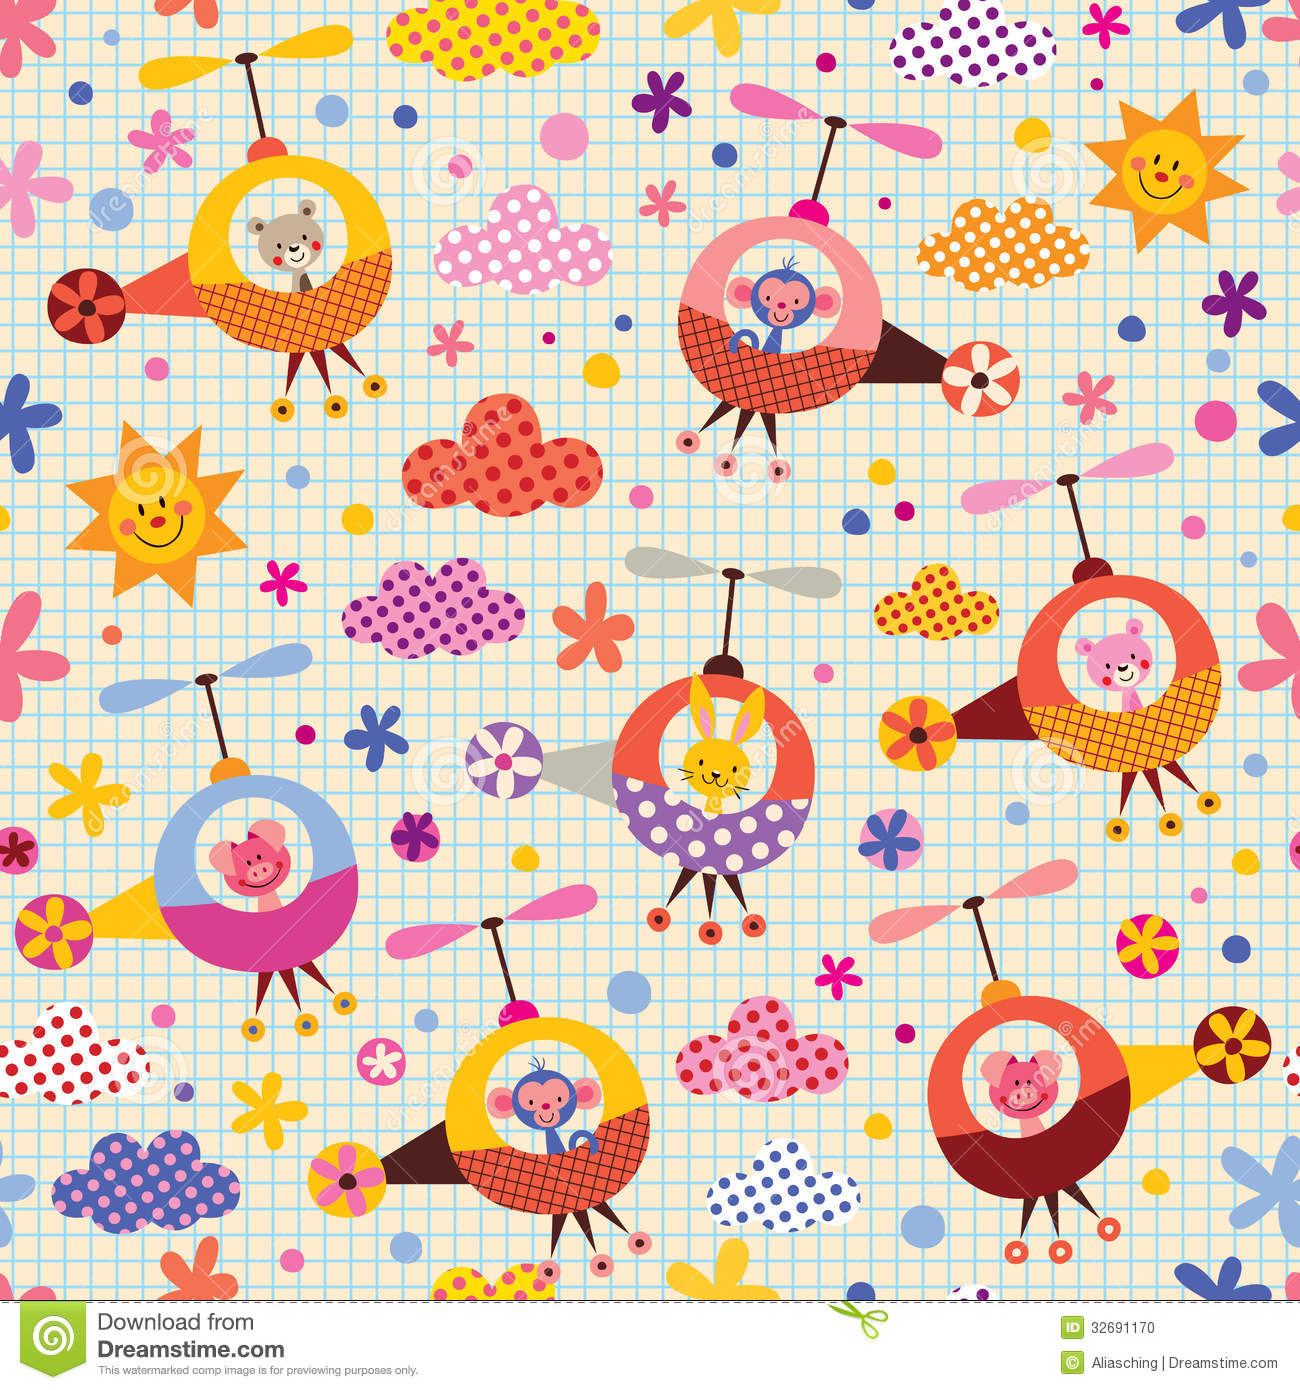 Scrapbook paper note - Cute Animals In Helicopters Kids Pattern Stock Photo Animals Book Cute Kids Note Paper Pattern Flower Scrapbook